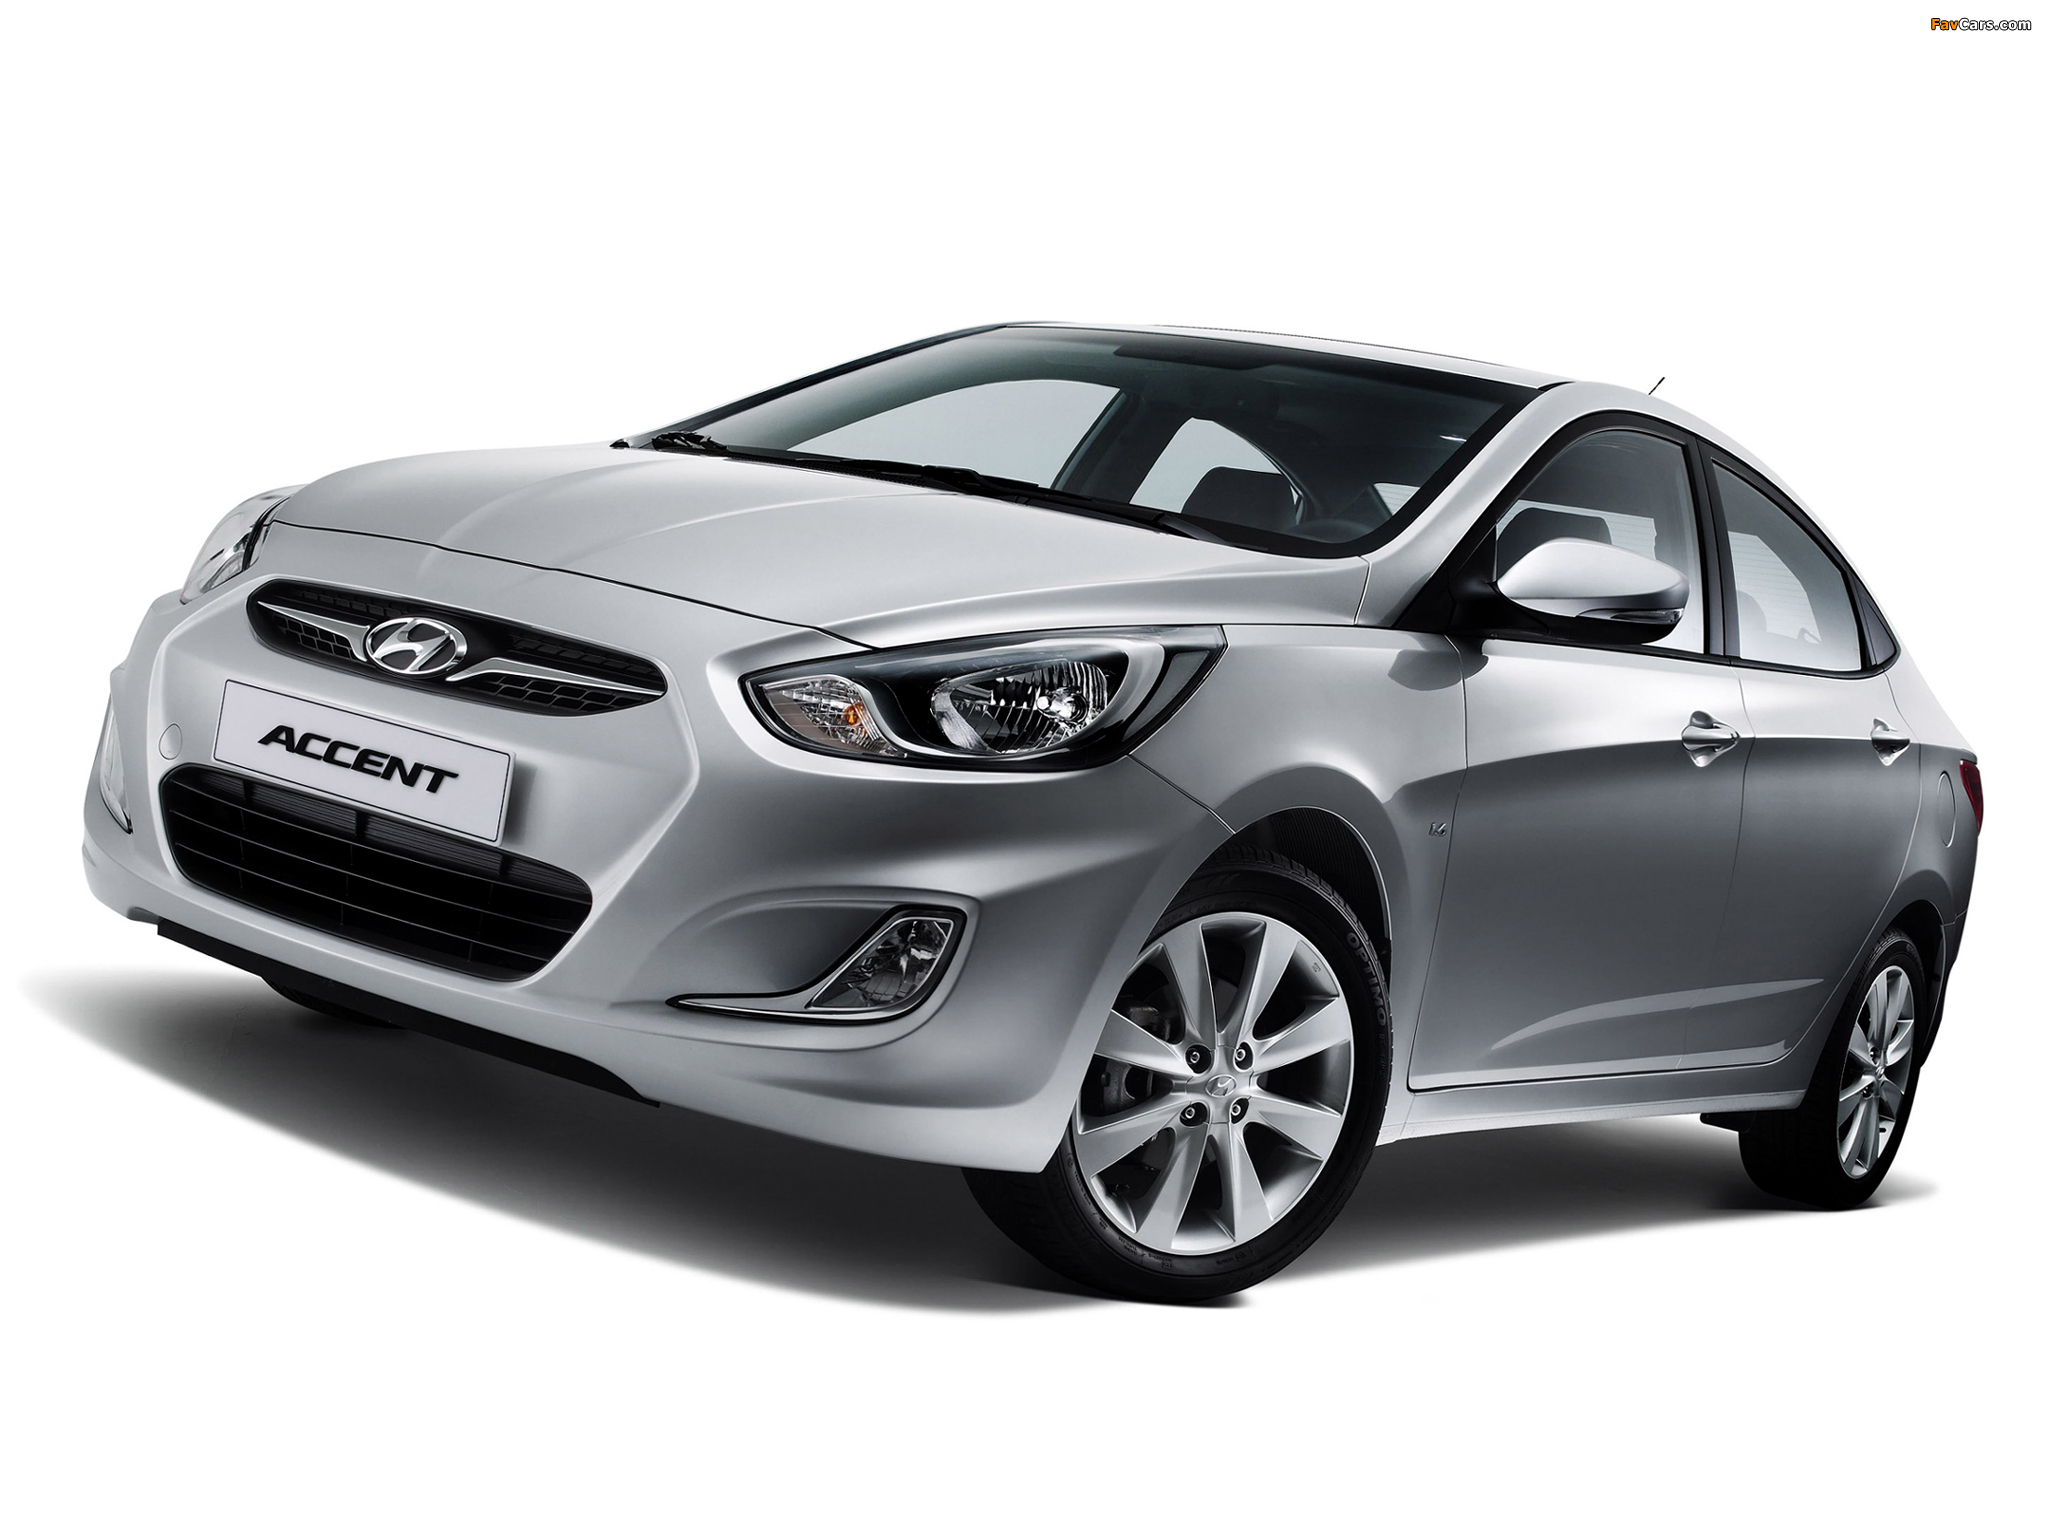 2014 hyundai accent information and photos momentcar. Black Bedroom Furniture Sets. Home Design Ideas